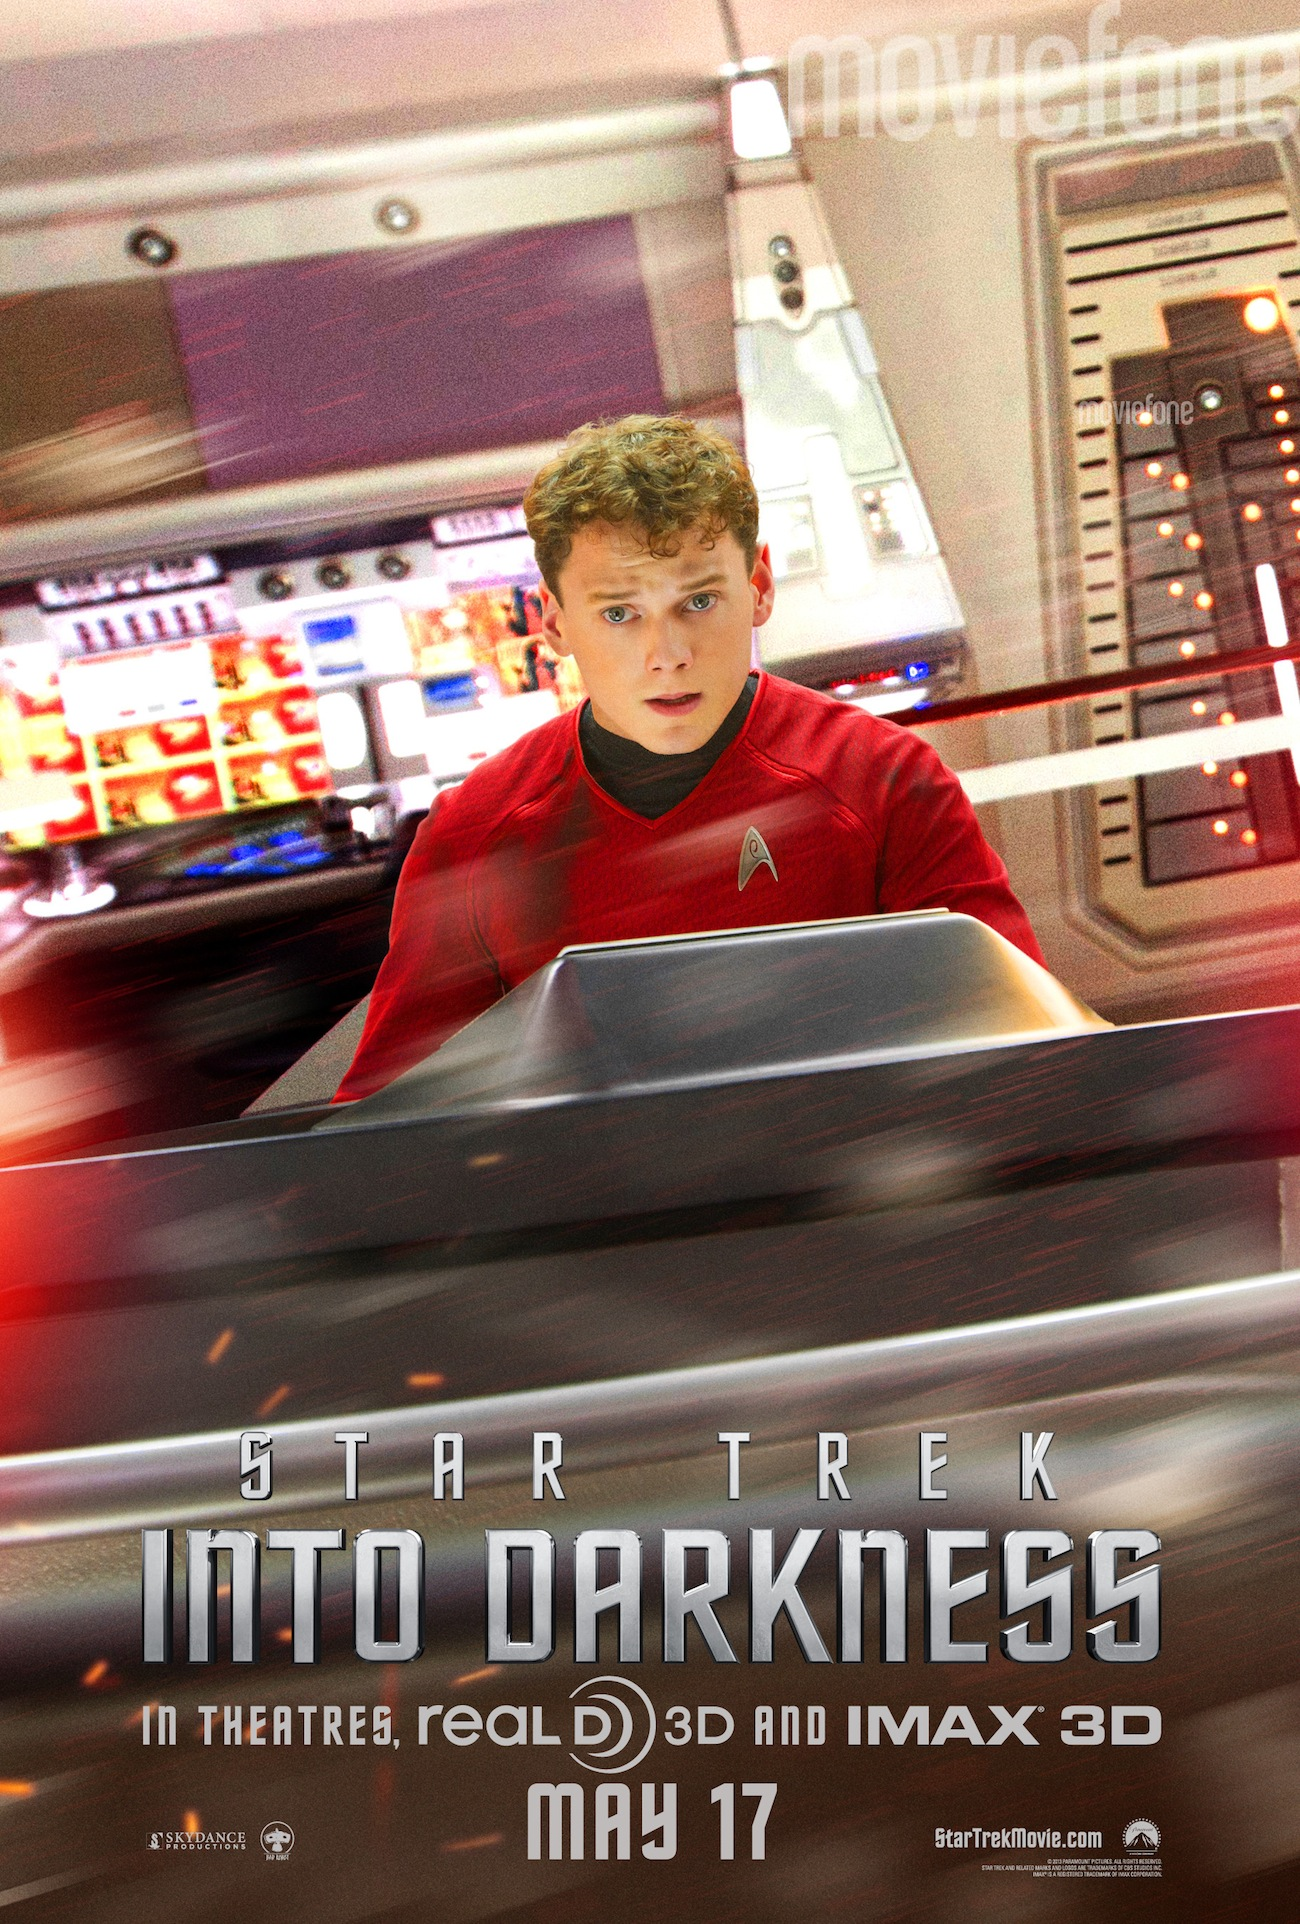 scotty and chekov get their own star trek into darkness posters